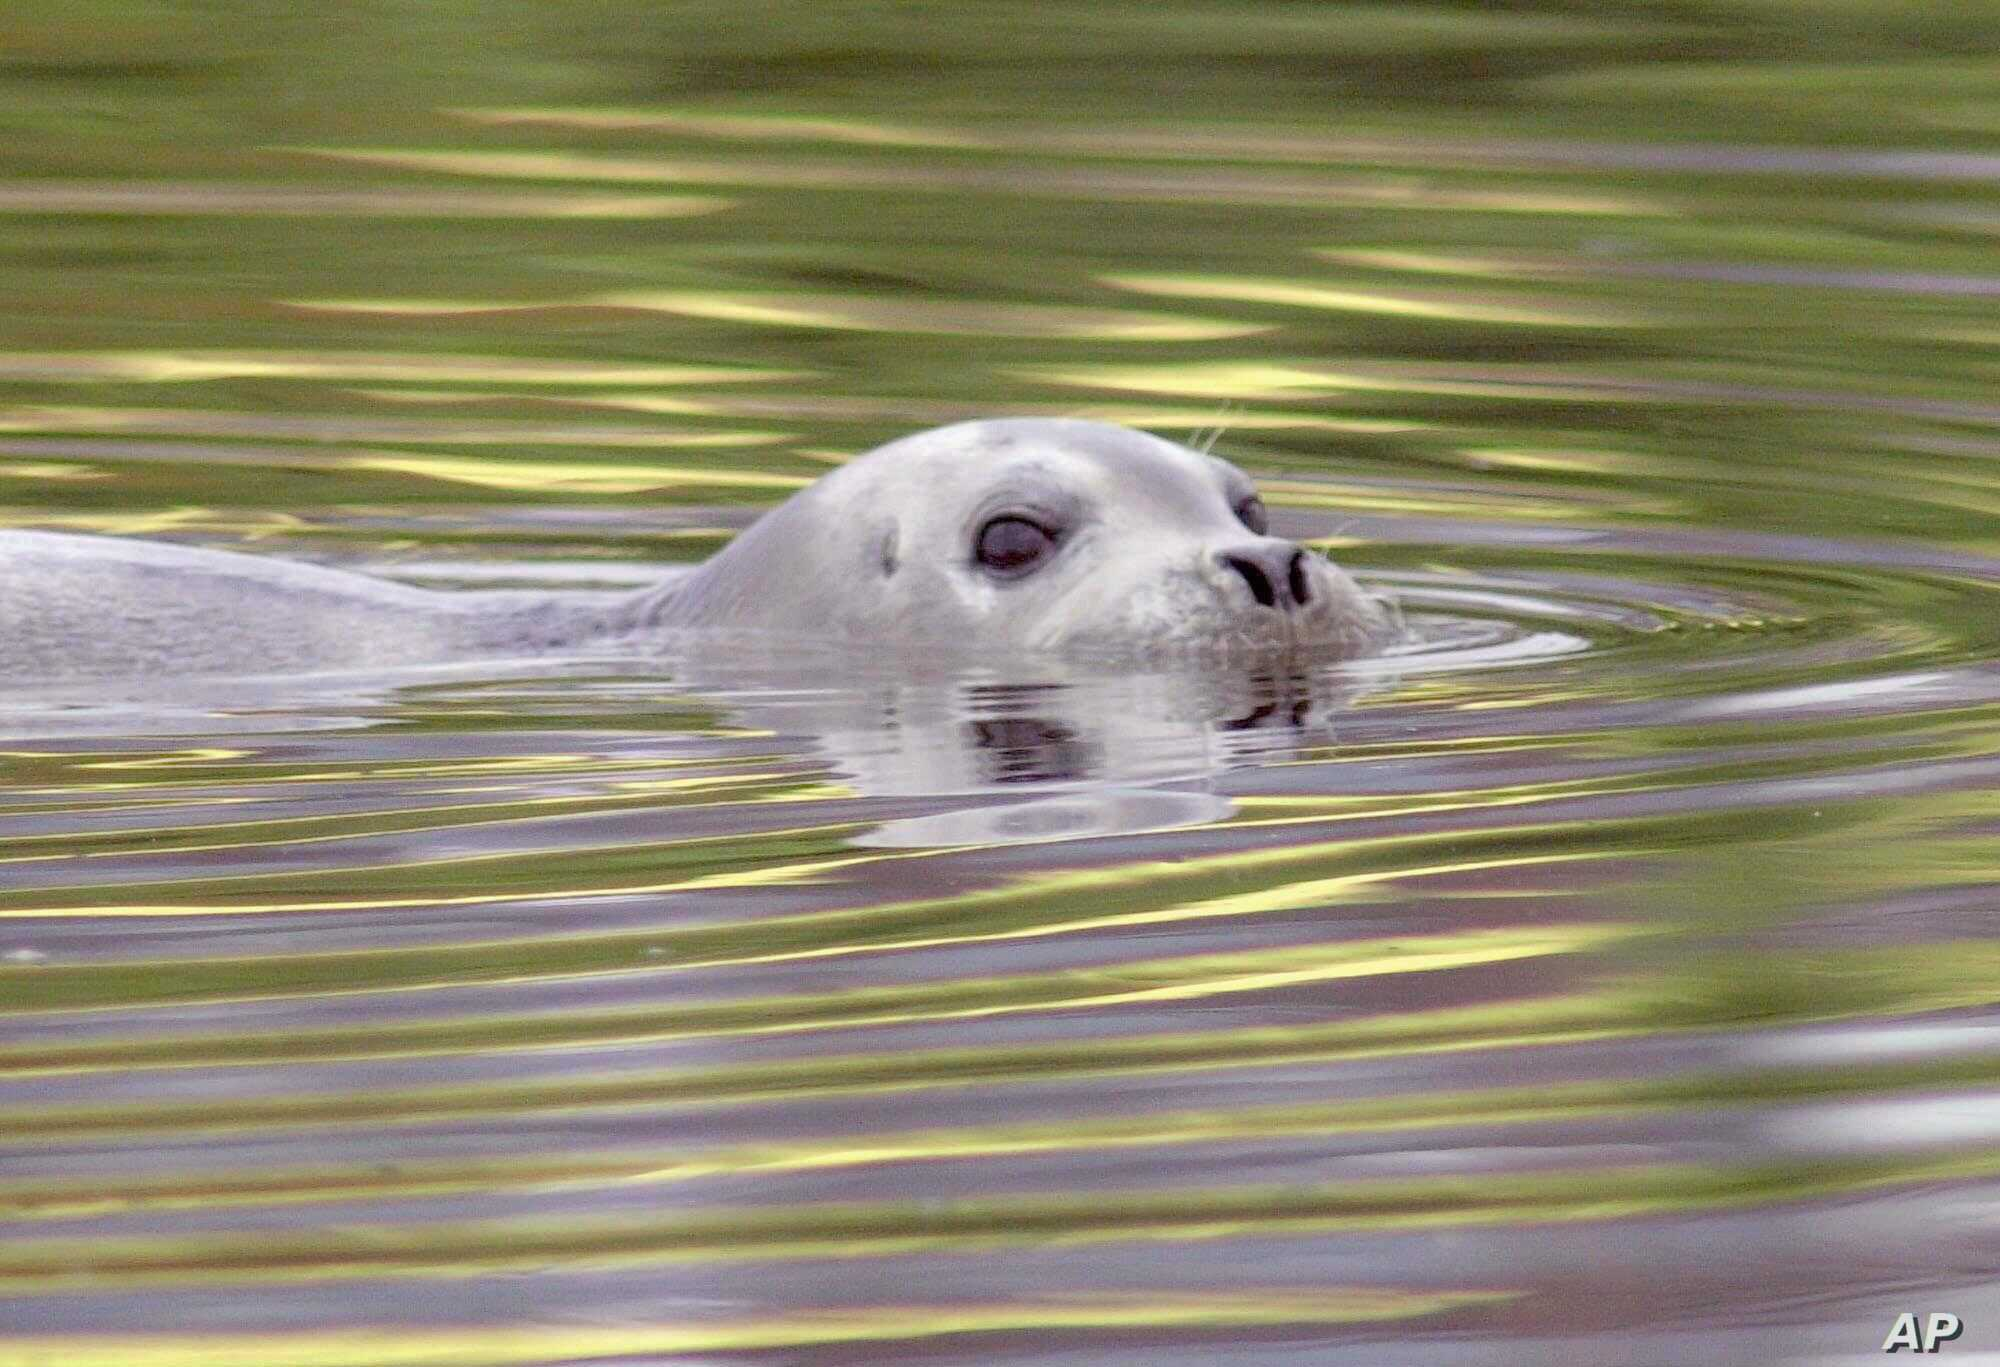 FILE - A bearded arctic seal, nicknamed Tama-chan by local residents, swims in the waters of the Tsurumi River in Kawasaki, near Tokyo, Japan.